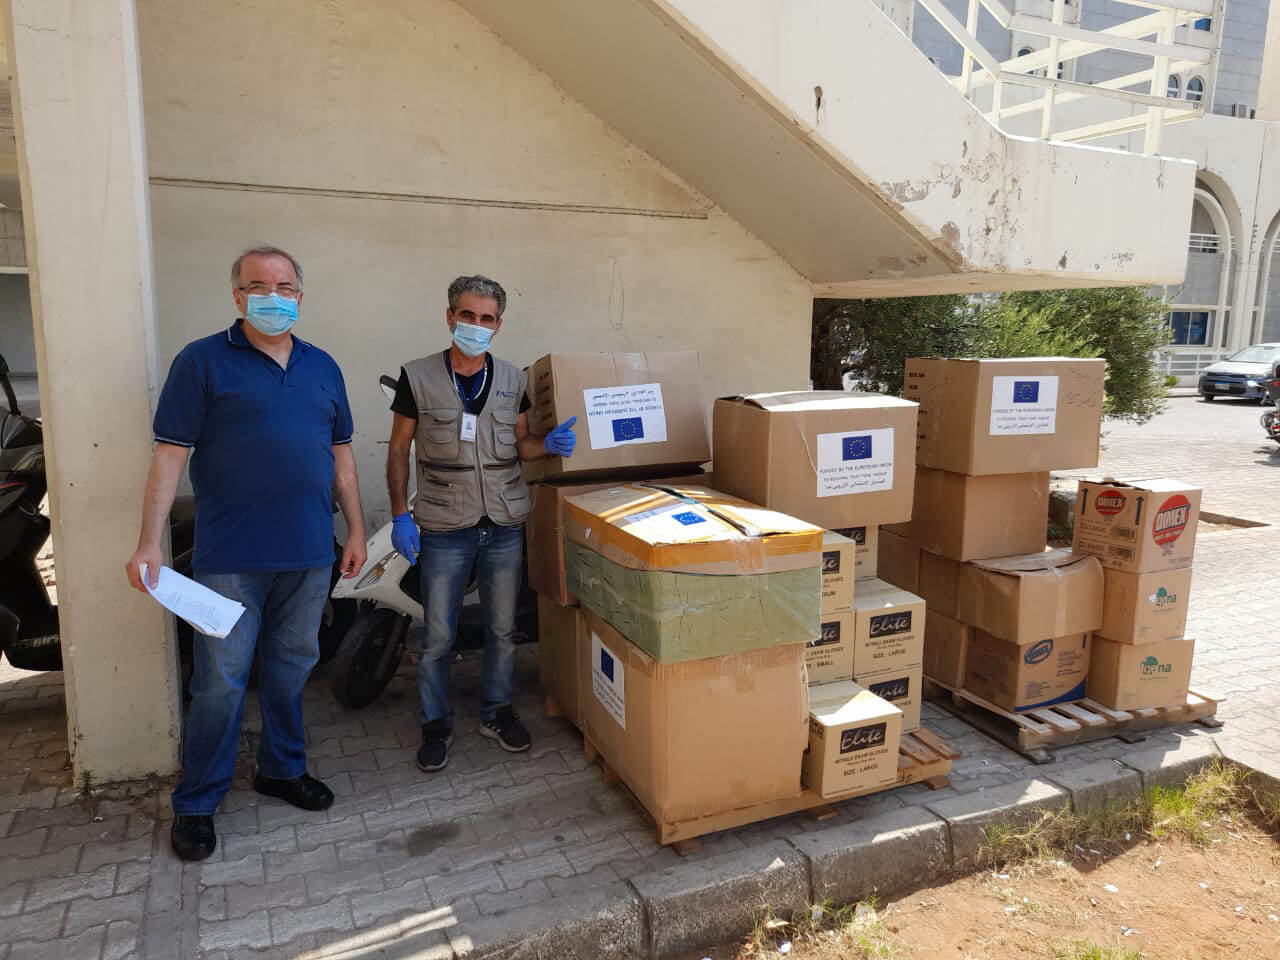 The Jesuit Hospital is one of 8 hospitals to receive PPE in Beirut, Lebanon.